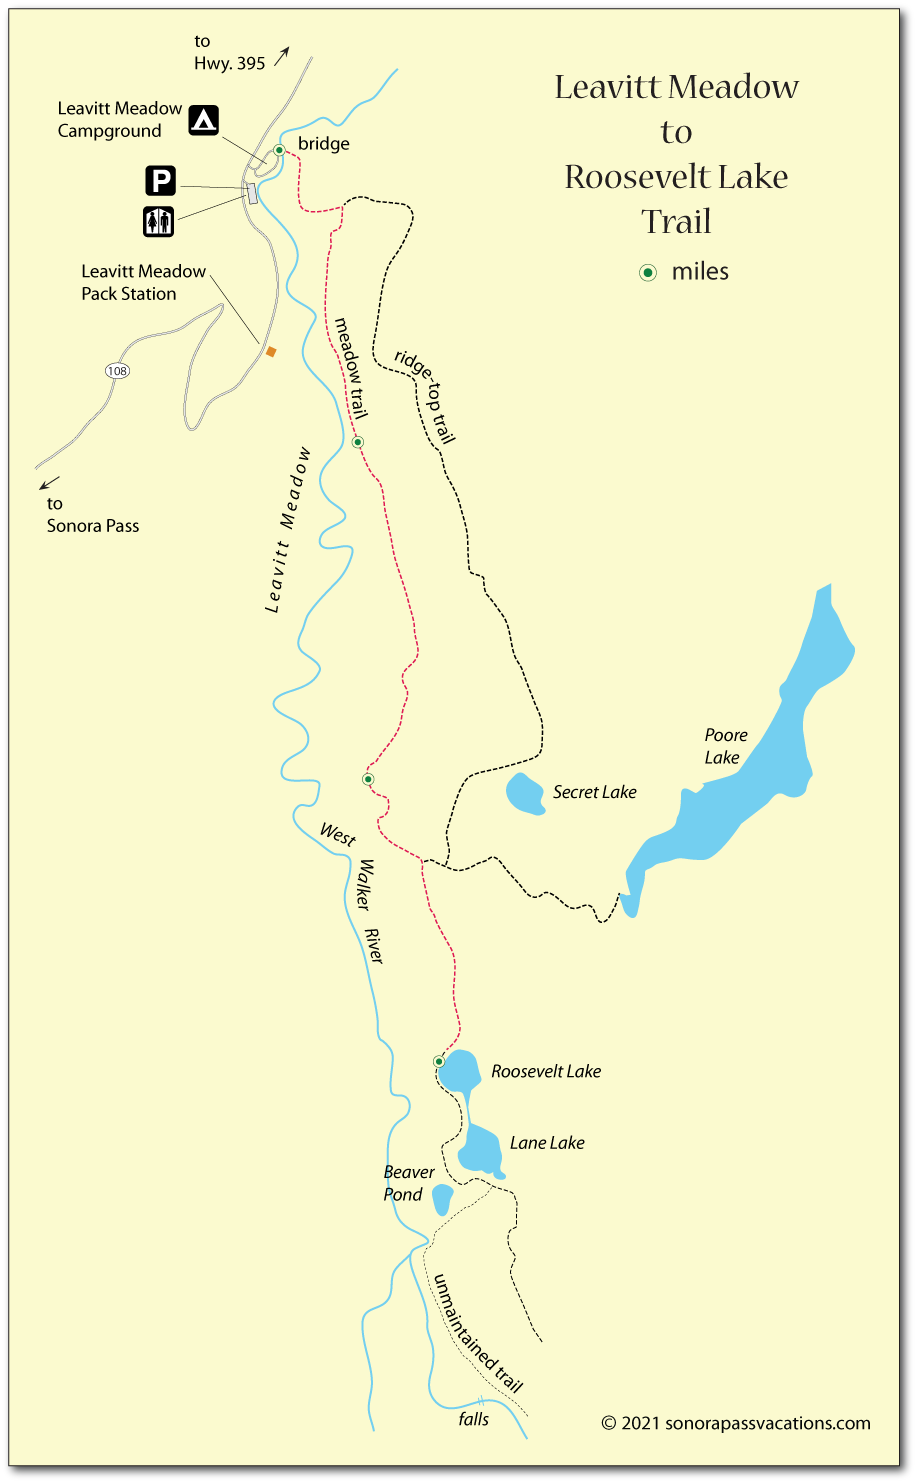 Map of the trail from Leavitt Meadow to Roosevelt Lake, Mono County, CA